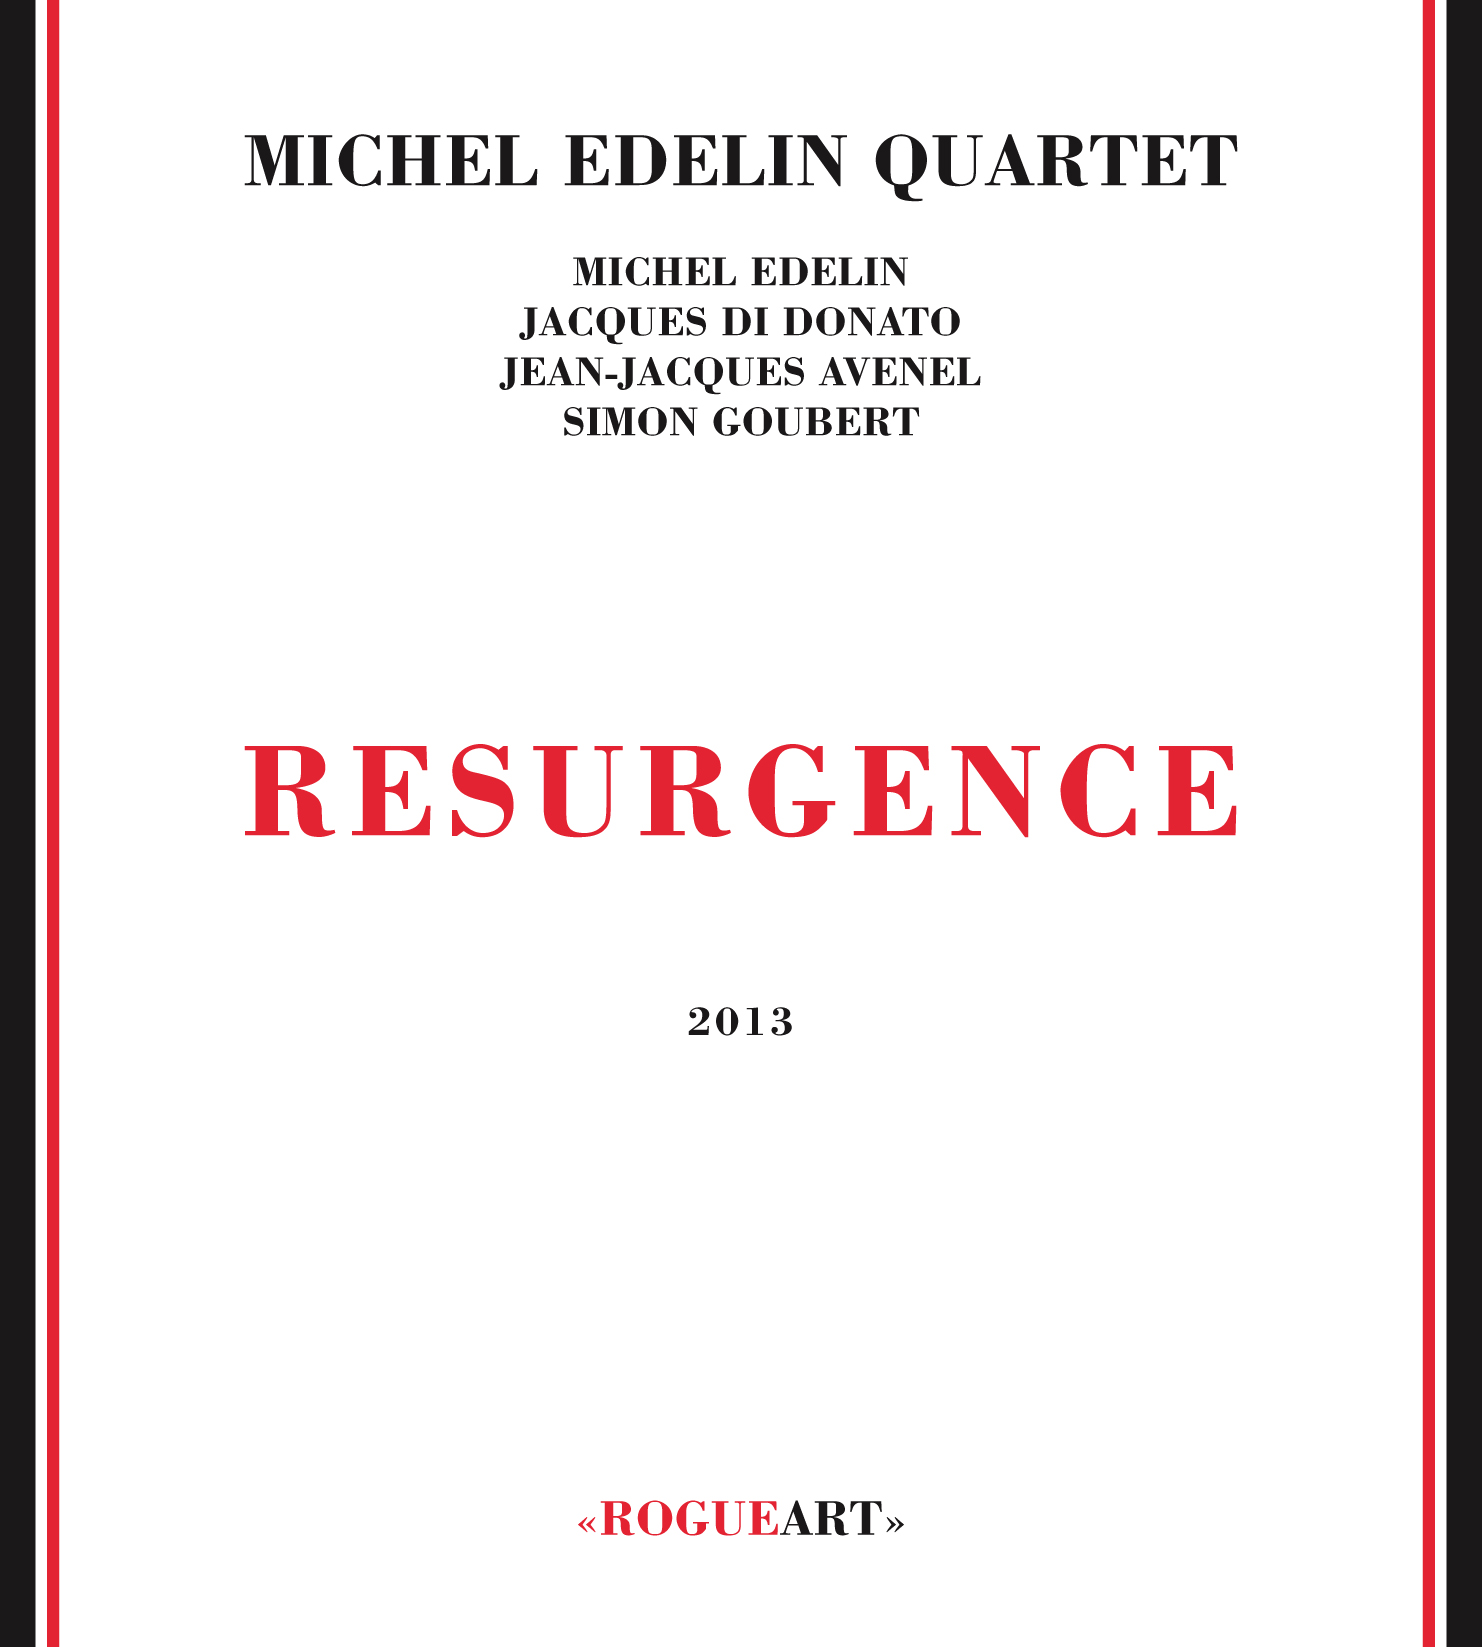 Front cover of the album RESURGENCE